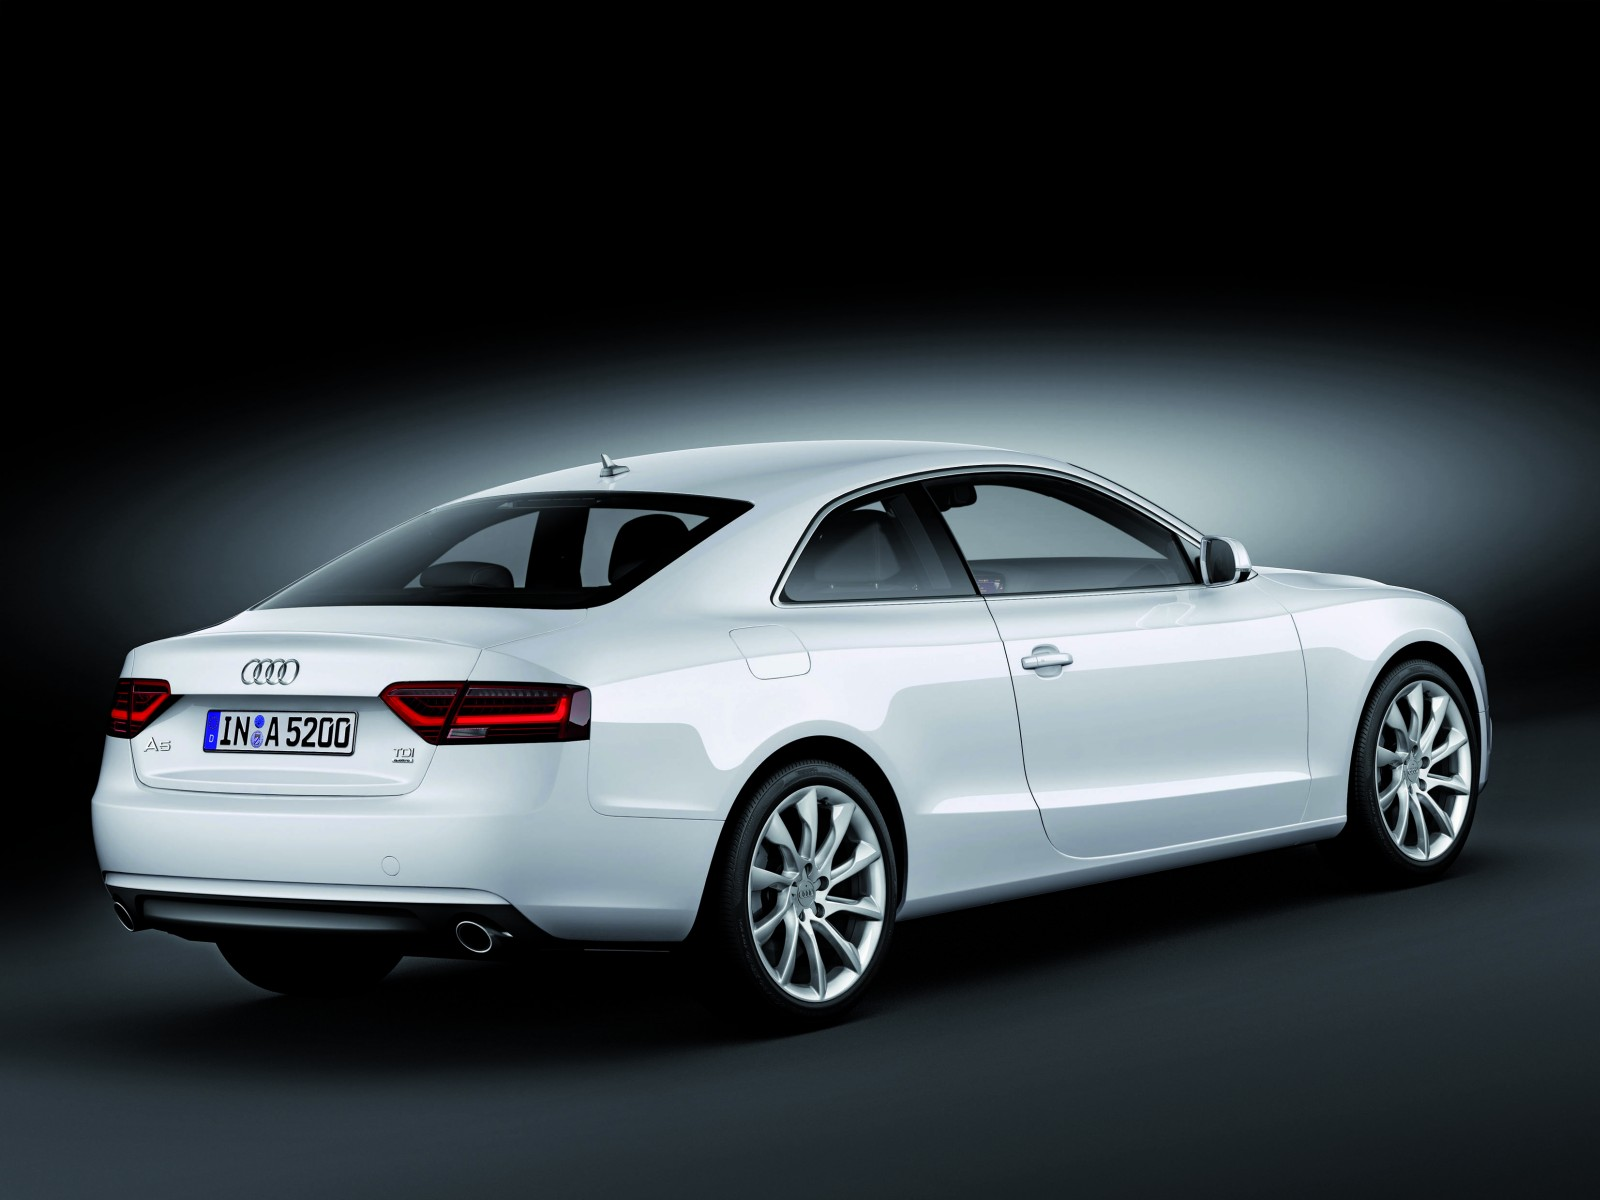 2012 audi a5 3 0 tdi quattro motor desktop. Black Bedroom Furniture Sets. Home Design Ideas